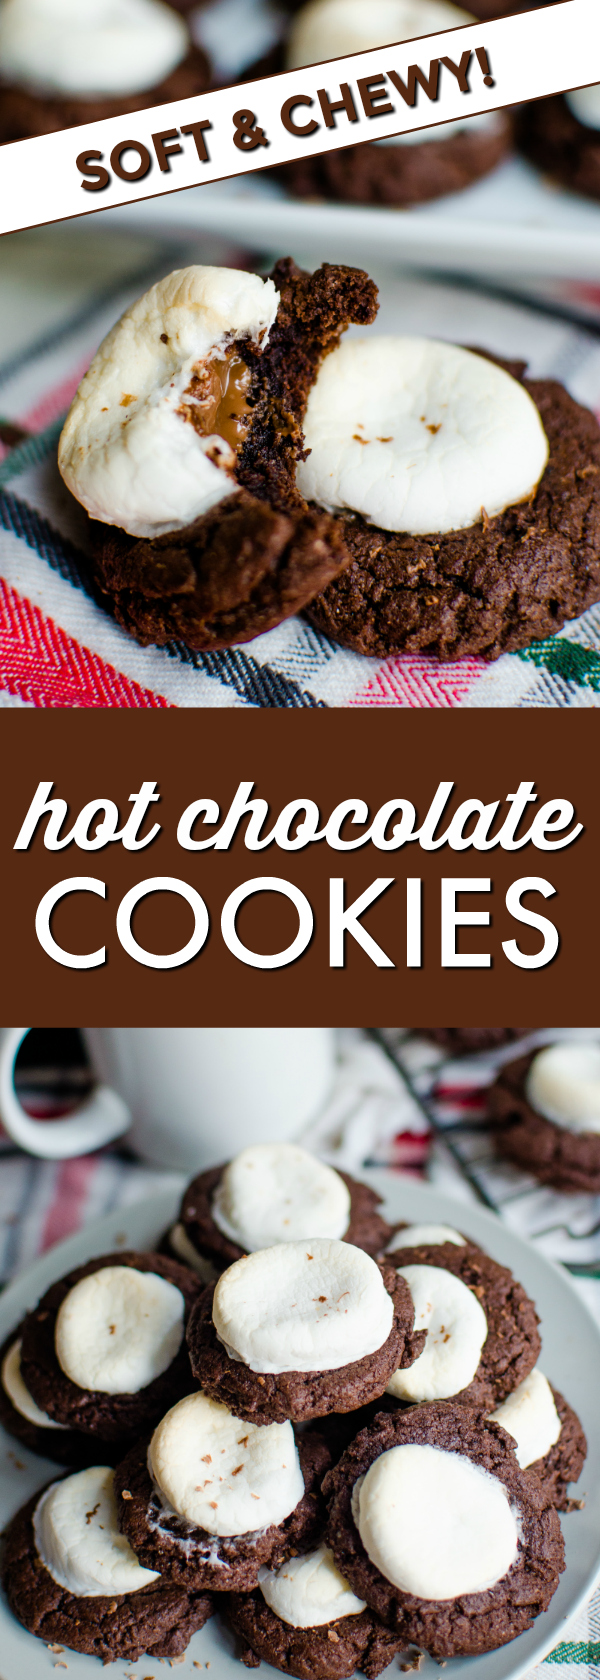 Delicious and chocolatey hot chocolate cookies topped with a gooey marshmallow and a hidden melted chocolate inside!